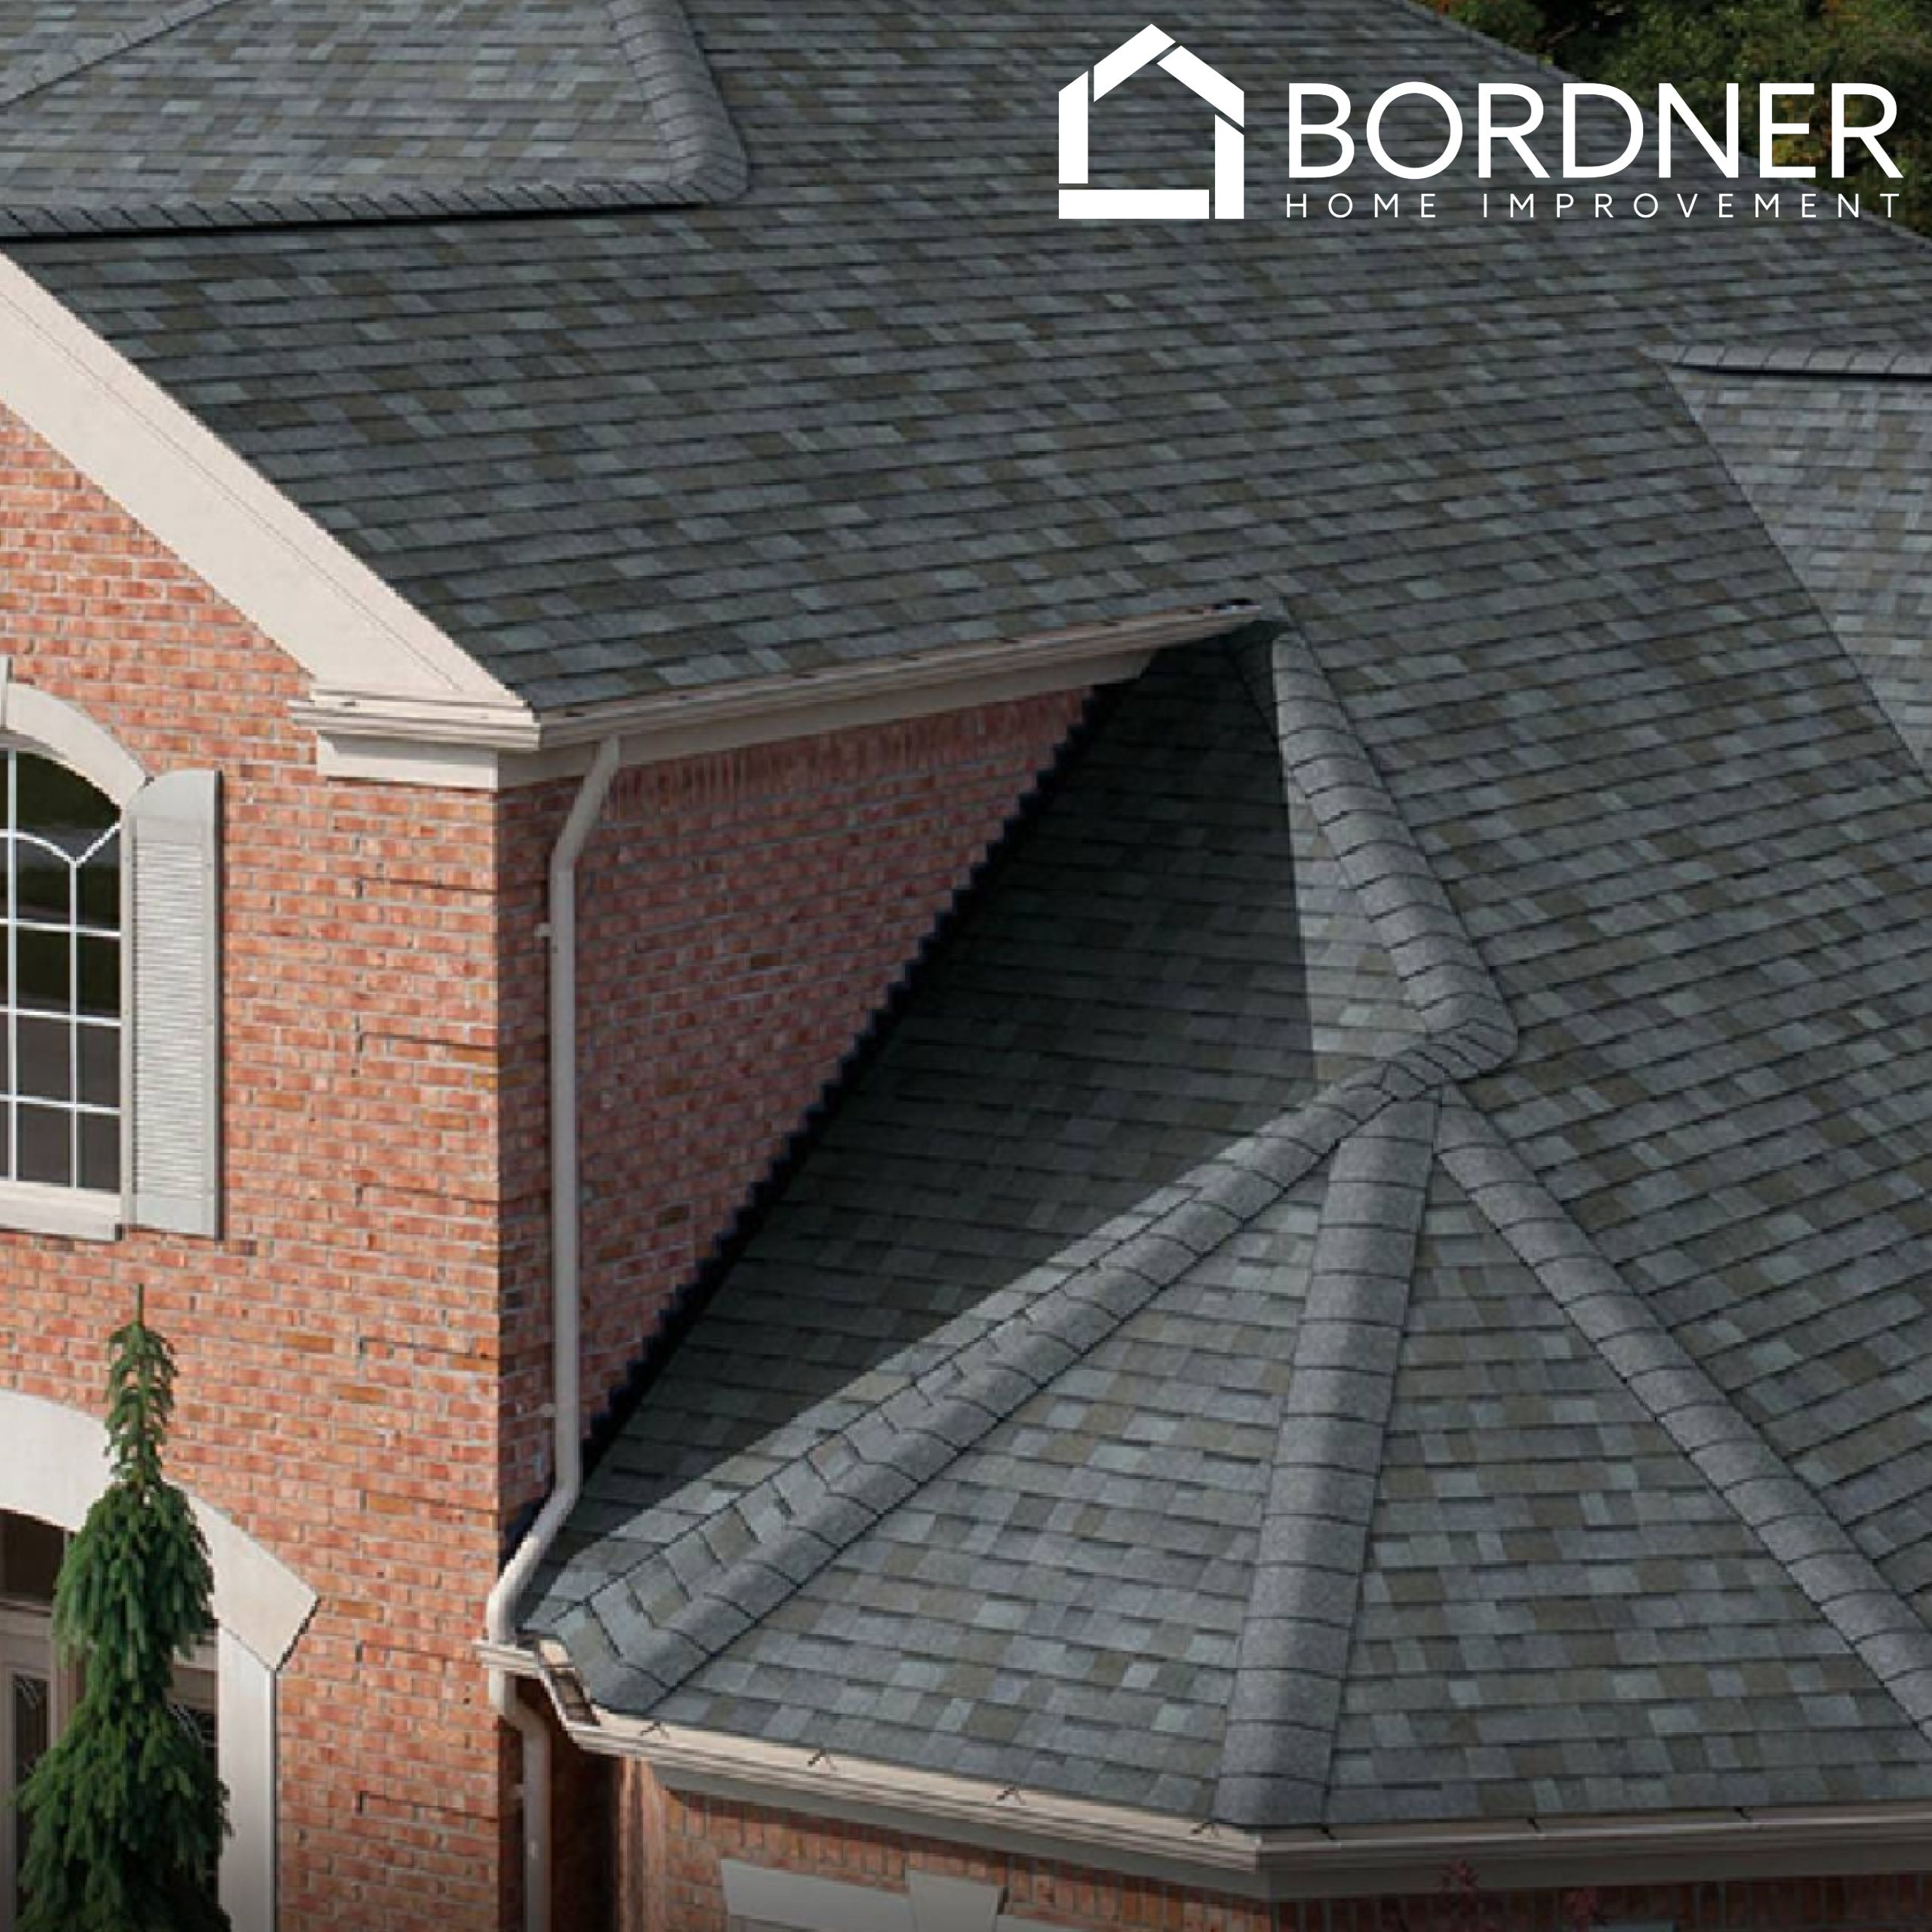 Roofing Contractor Kansas City Mo Roofing Contractors Roof Installation Home Improvement